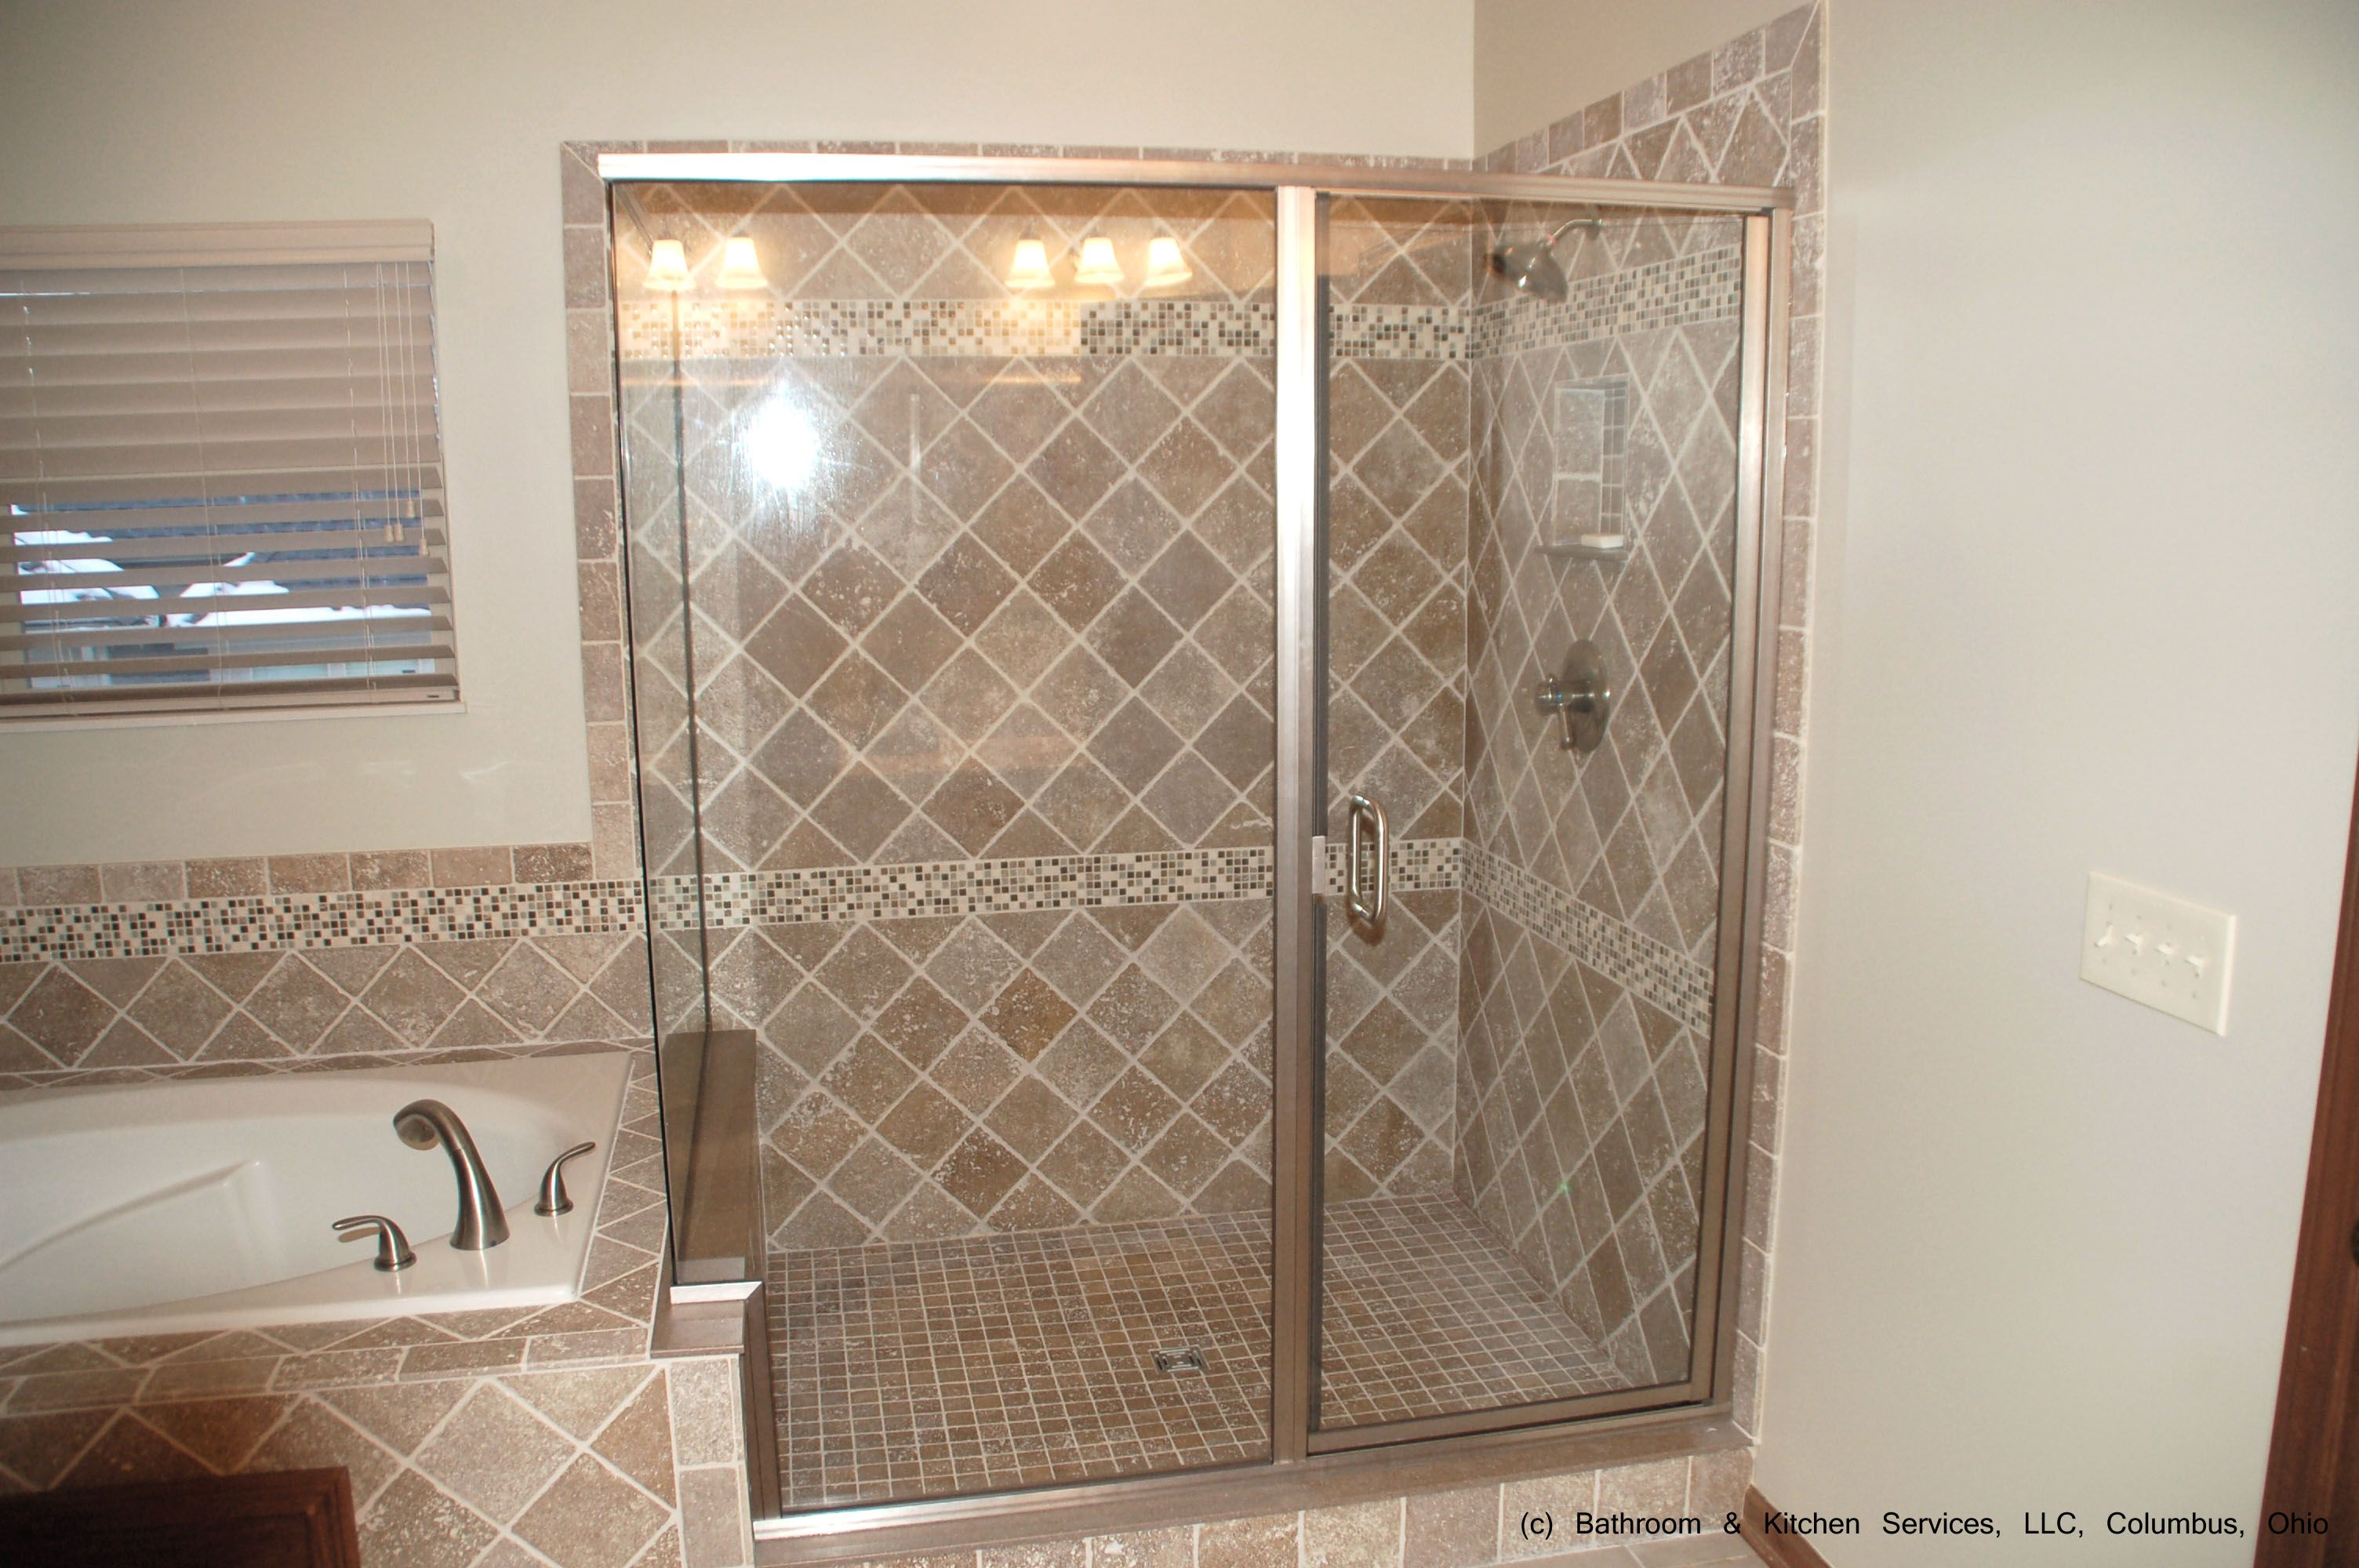 Shower and tub tile carry design continuity in this custom layout.  Square tile on shower floor balances diagonal tile and smaller square tile bands for cohesive and interesting look.